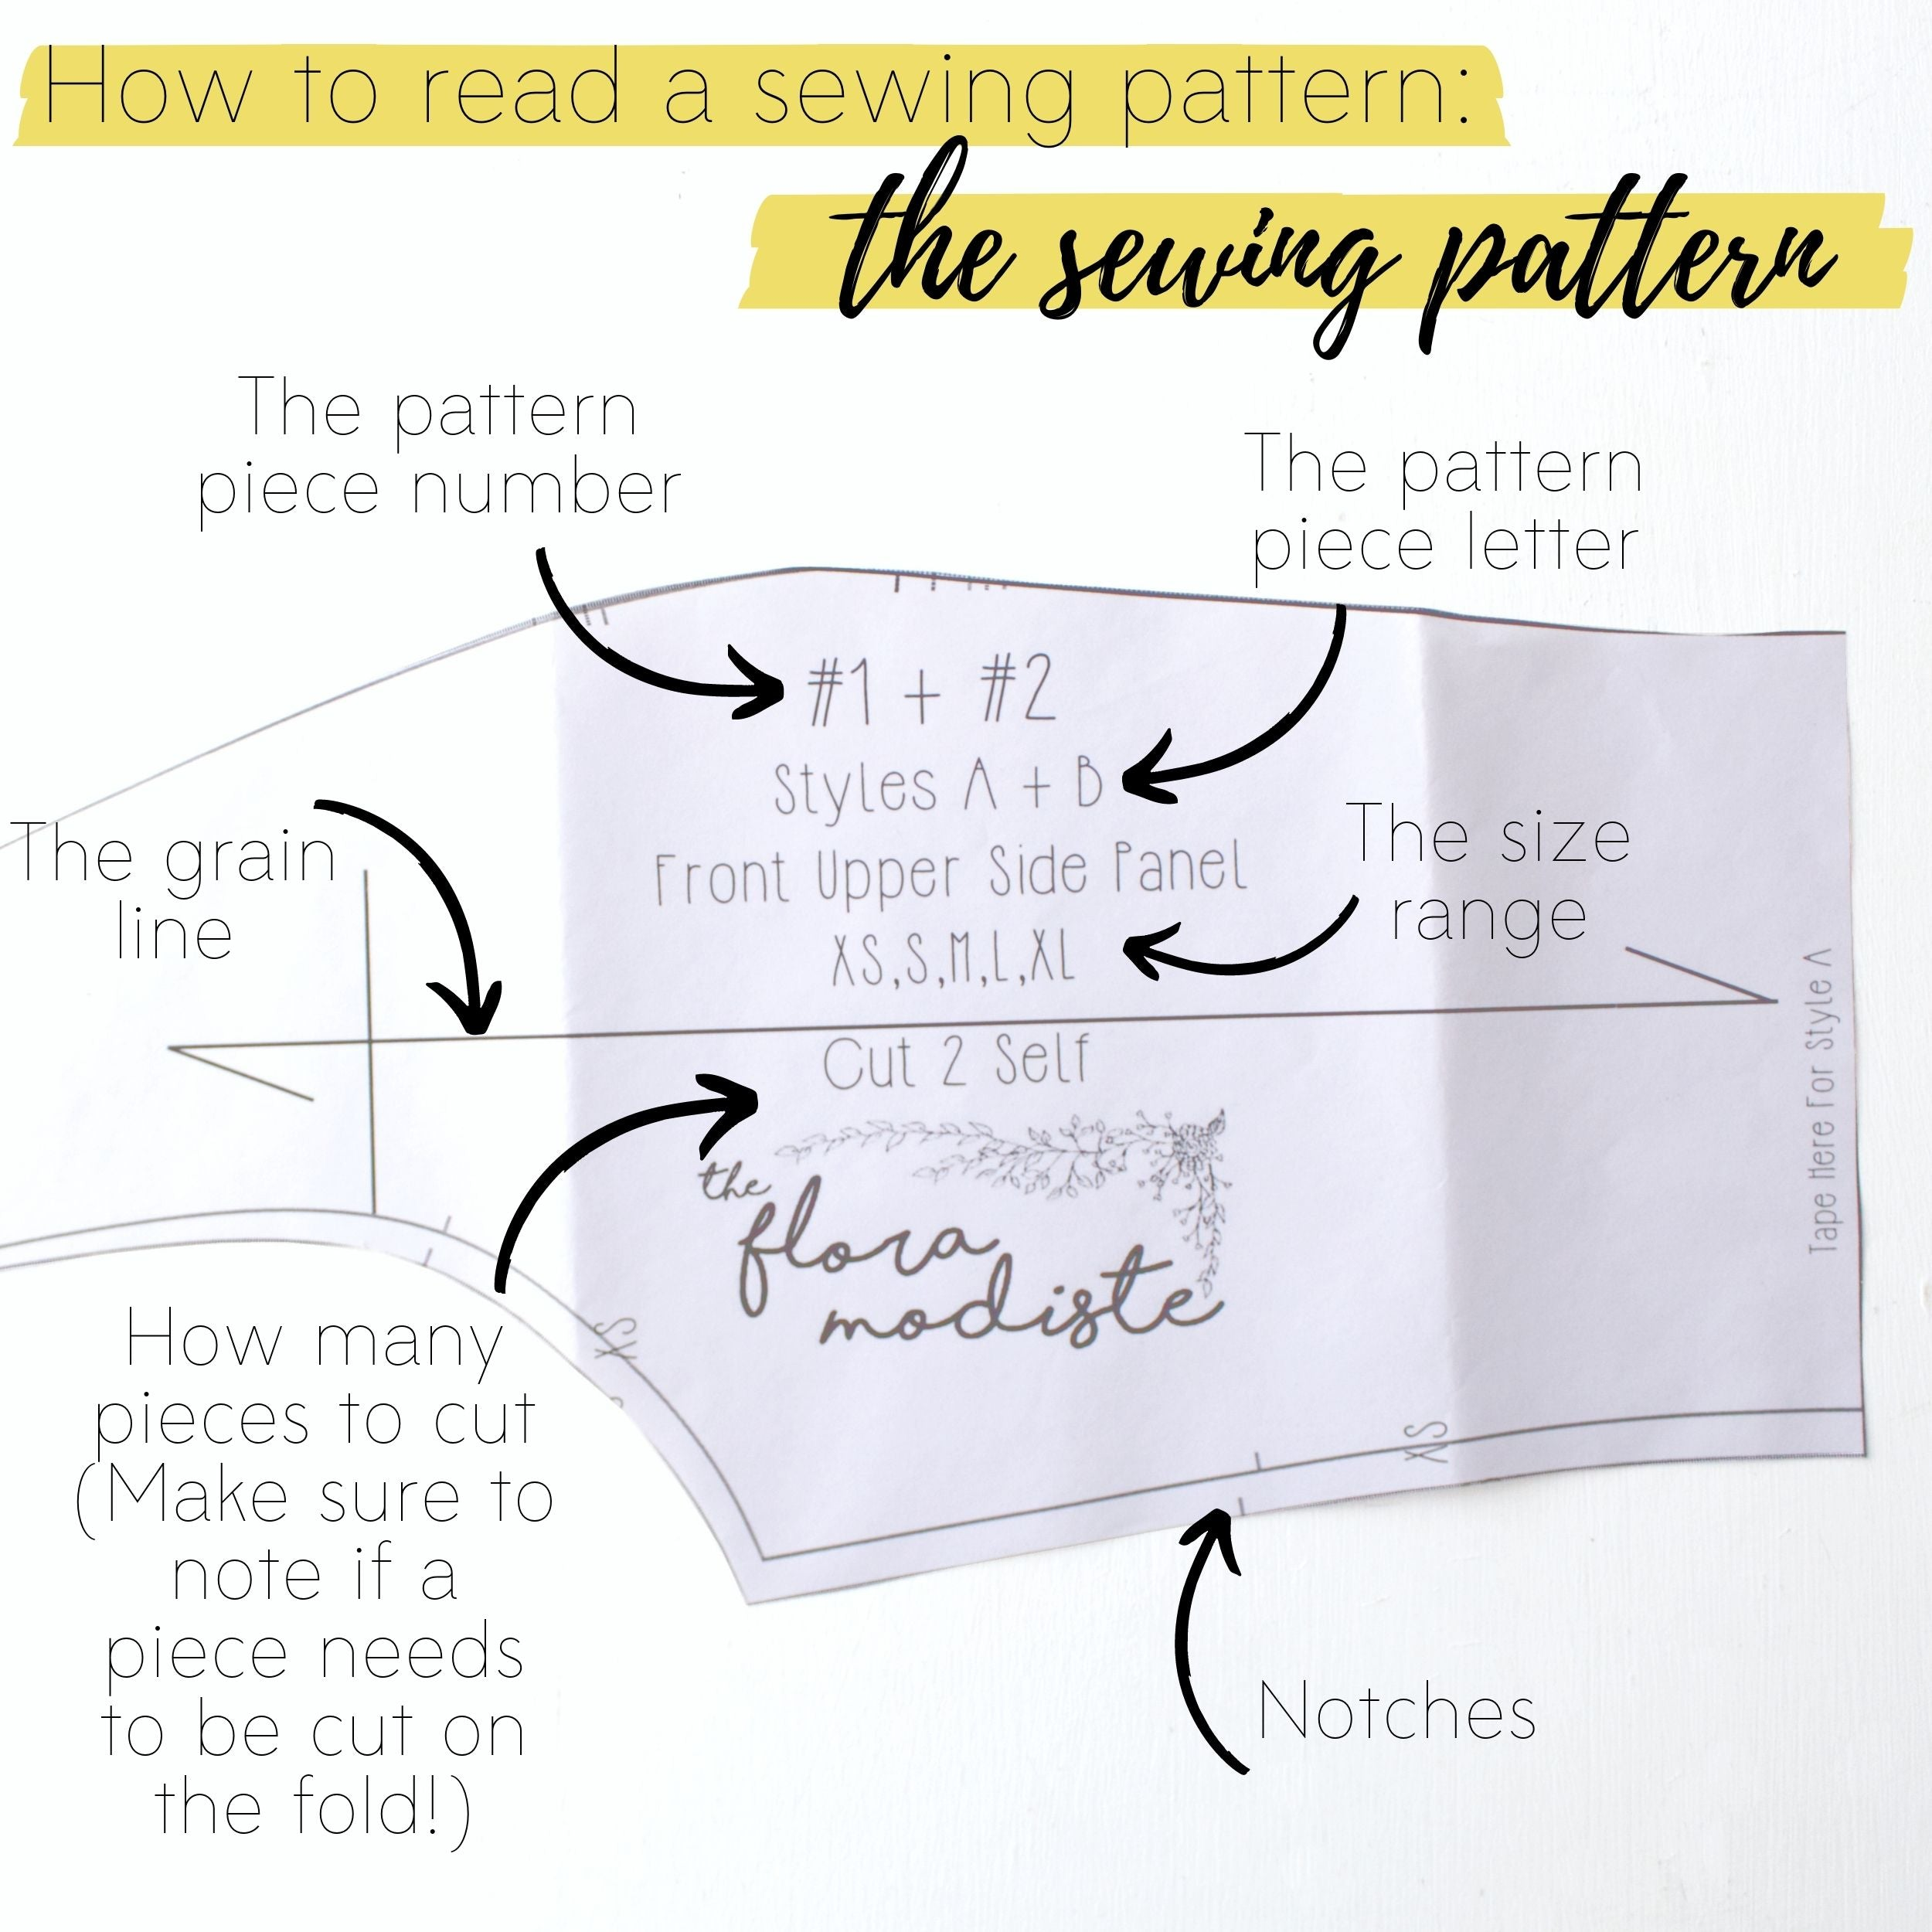 How to read a sewing pattern: The sewing pattern